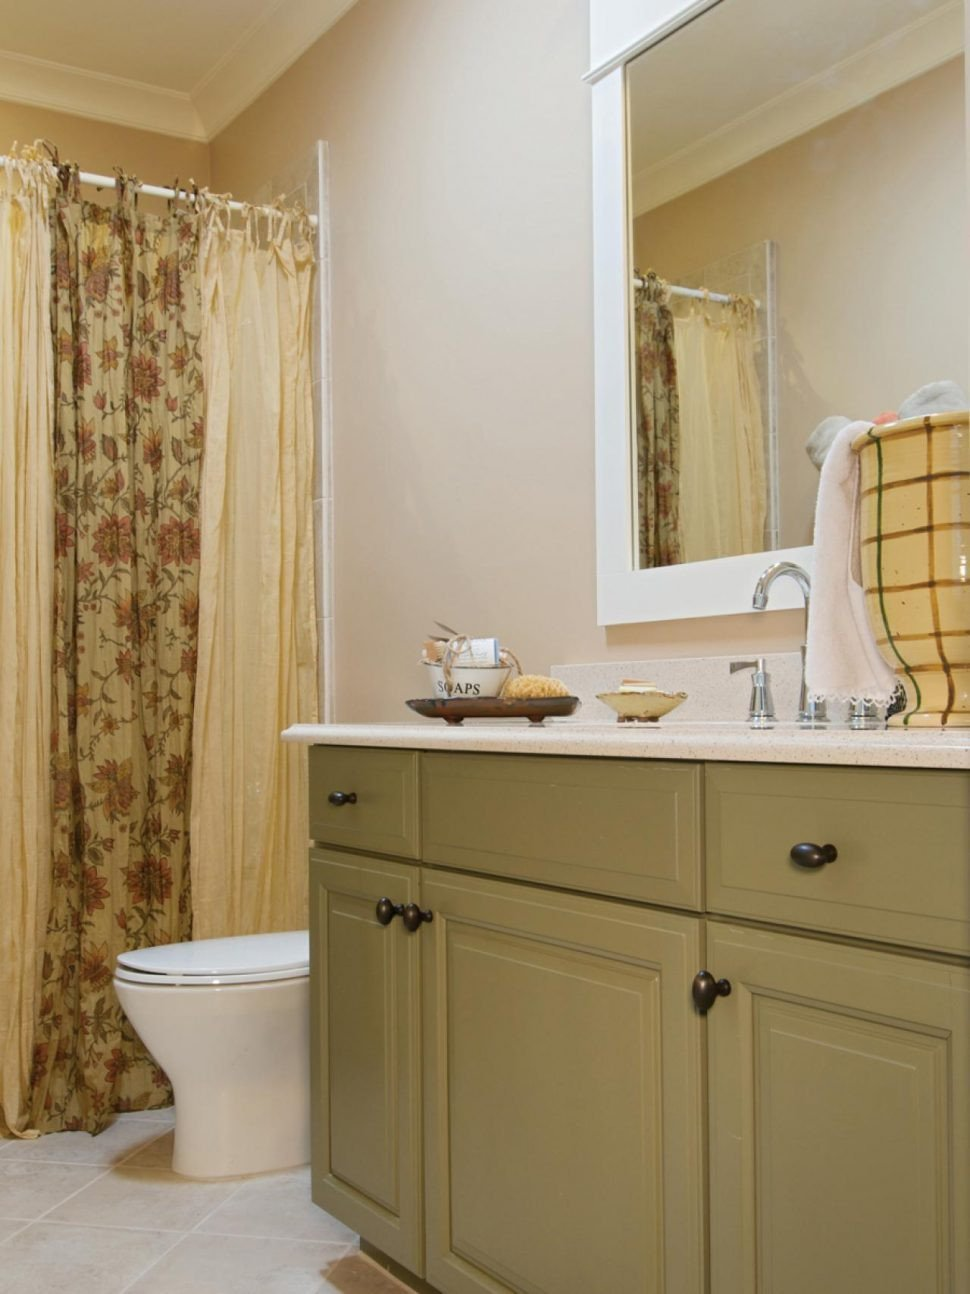 Red and Brown Bathroom Decor Fresh 99 Excelent Red and Brown Bathroom Accessories Image Ideas